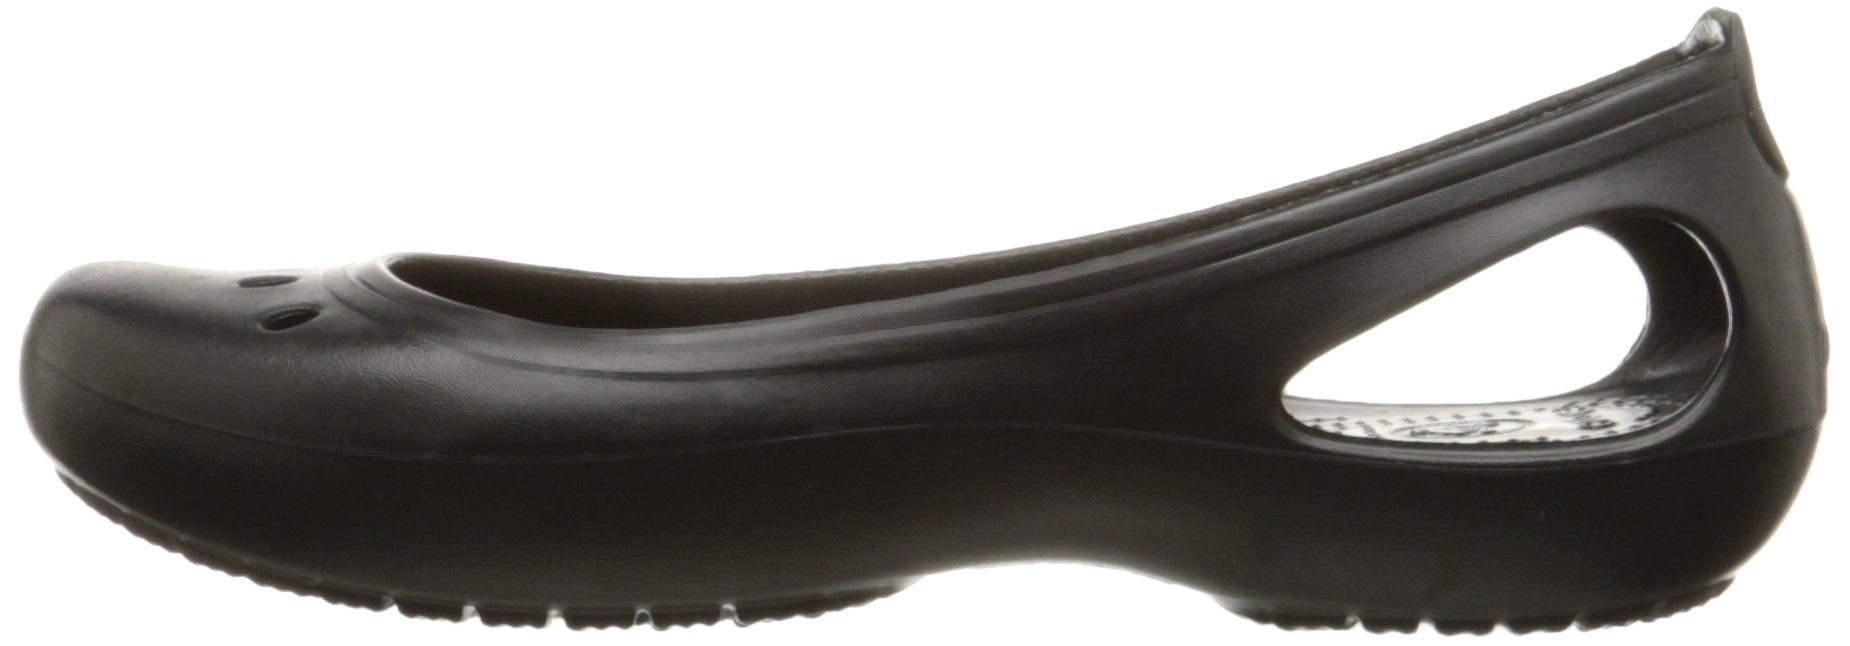 Crocs Women's Kadee Ballet Flat,Black/Black,8 M US by Crocs (Image #5)